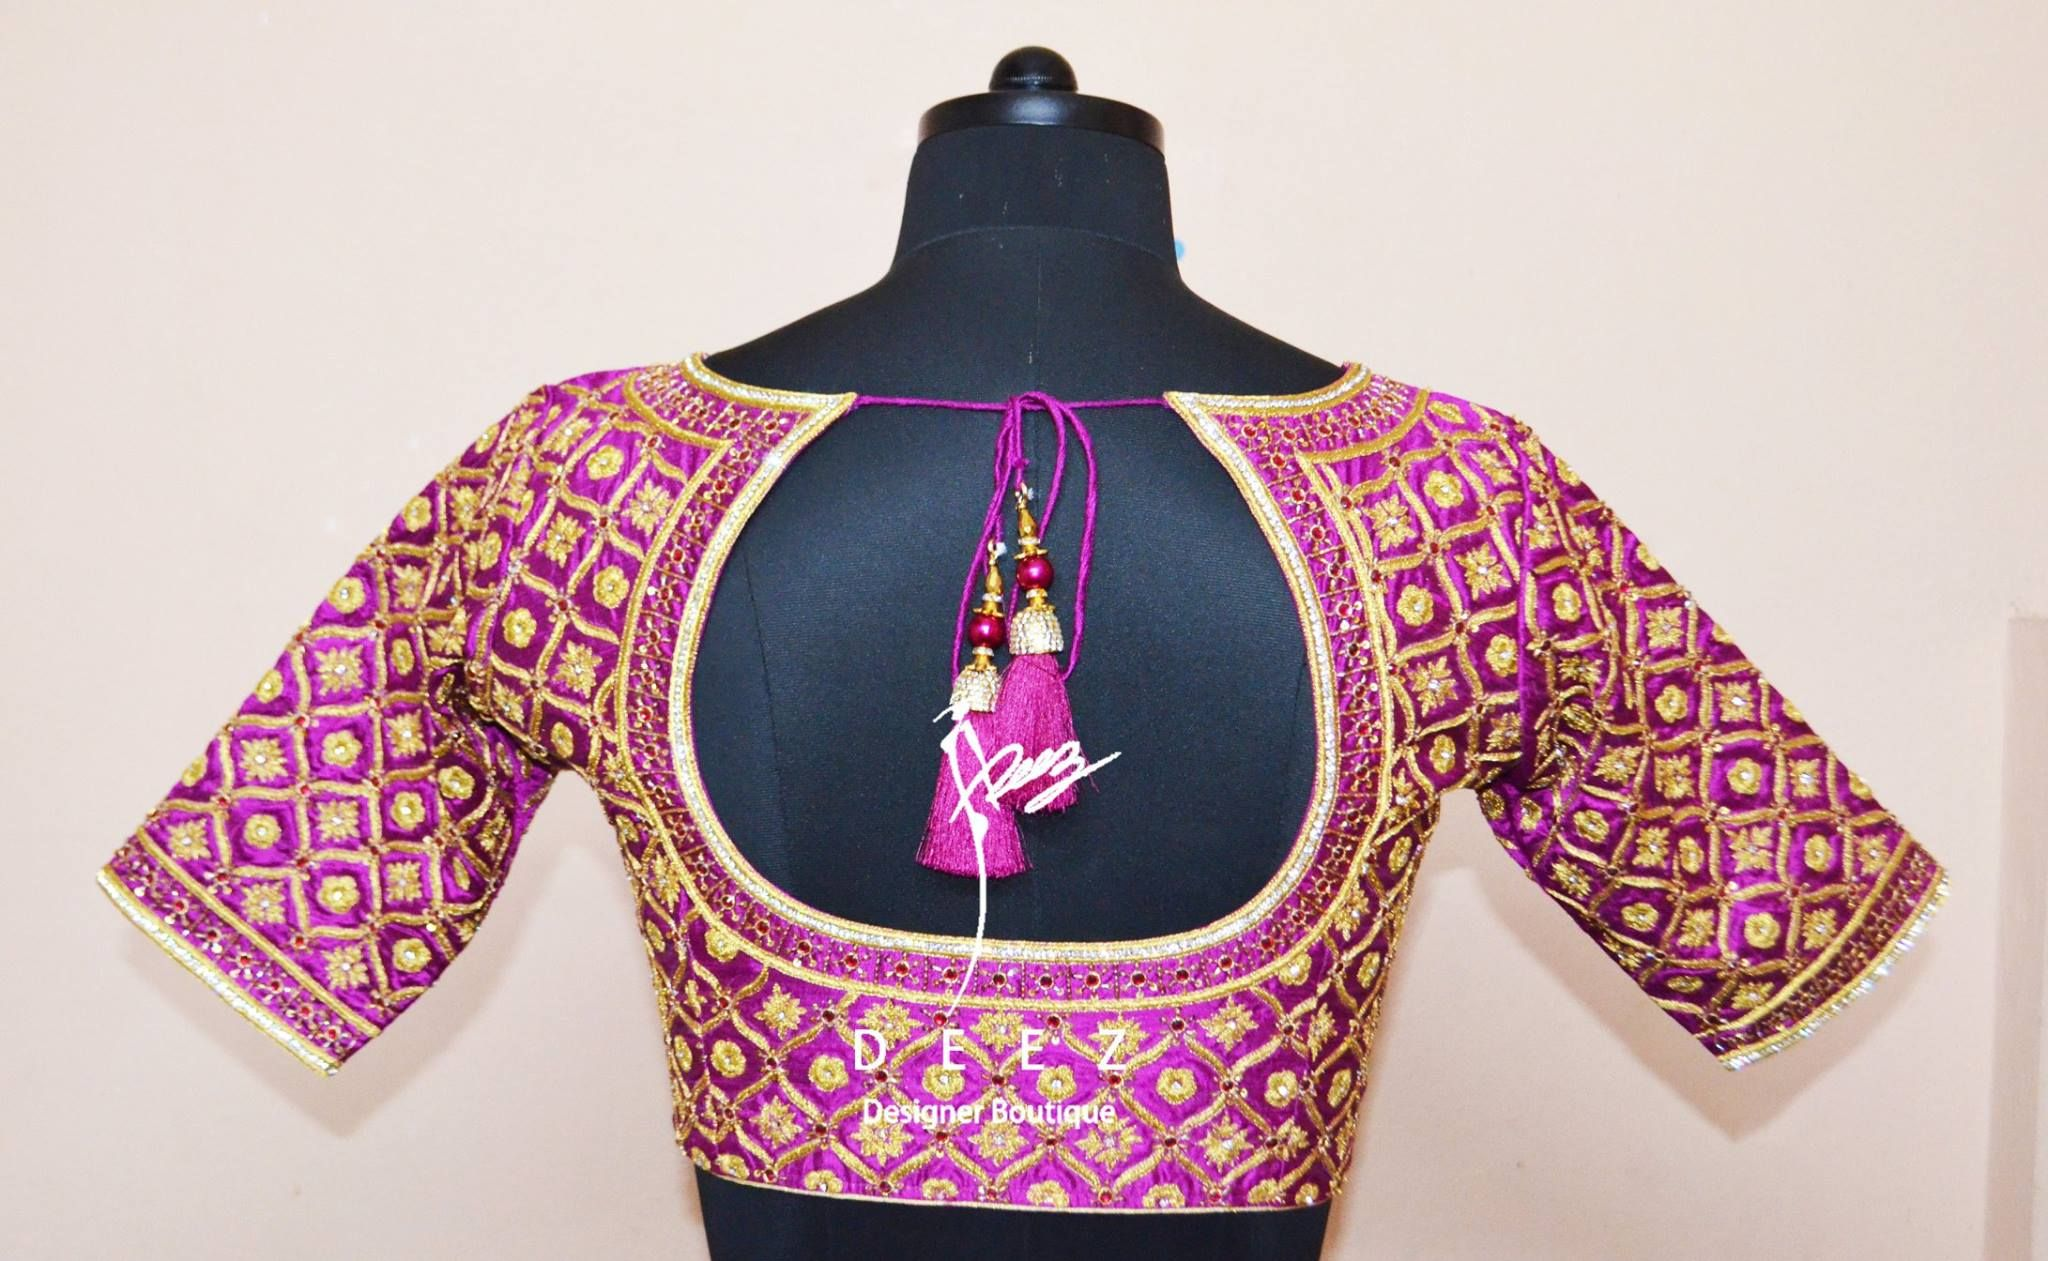 Saree blouse design sleeve pin by suchita pawar on blouse designs  pinterest  blouse designs